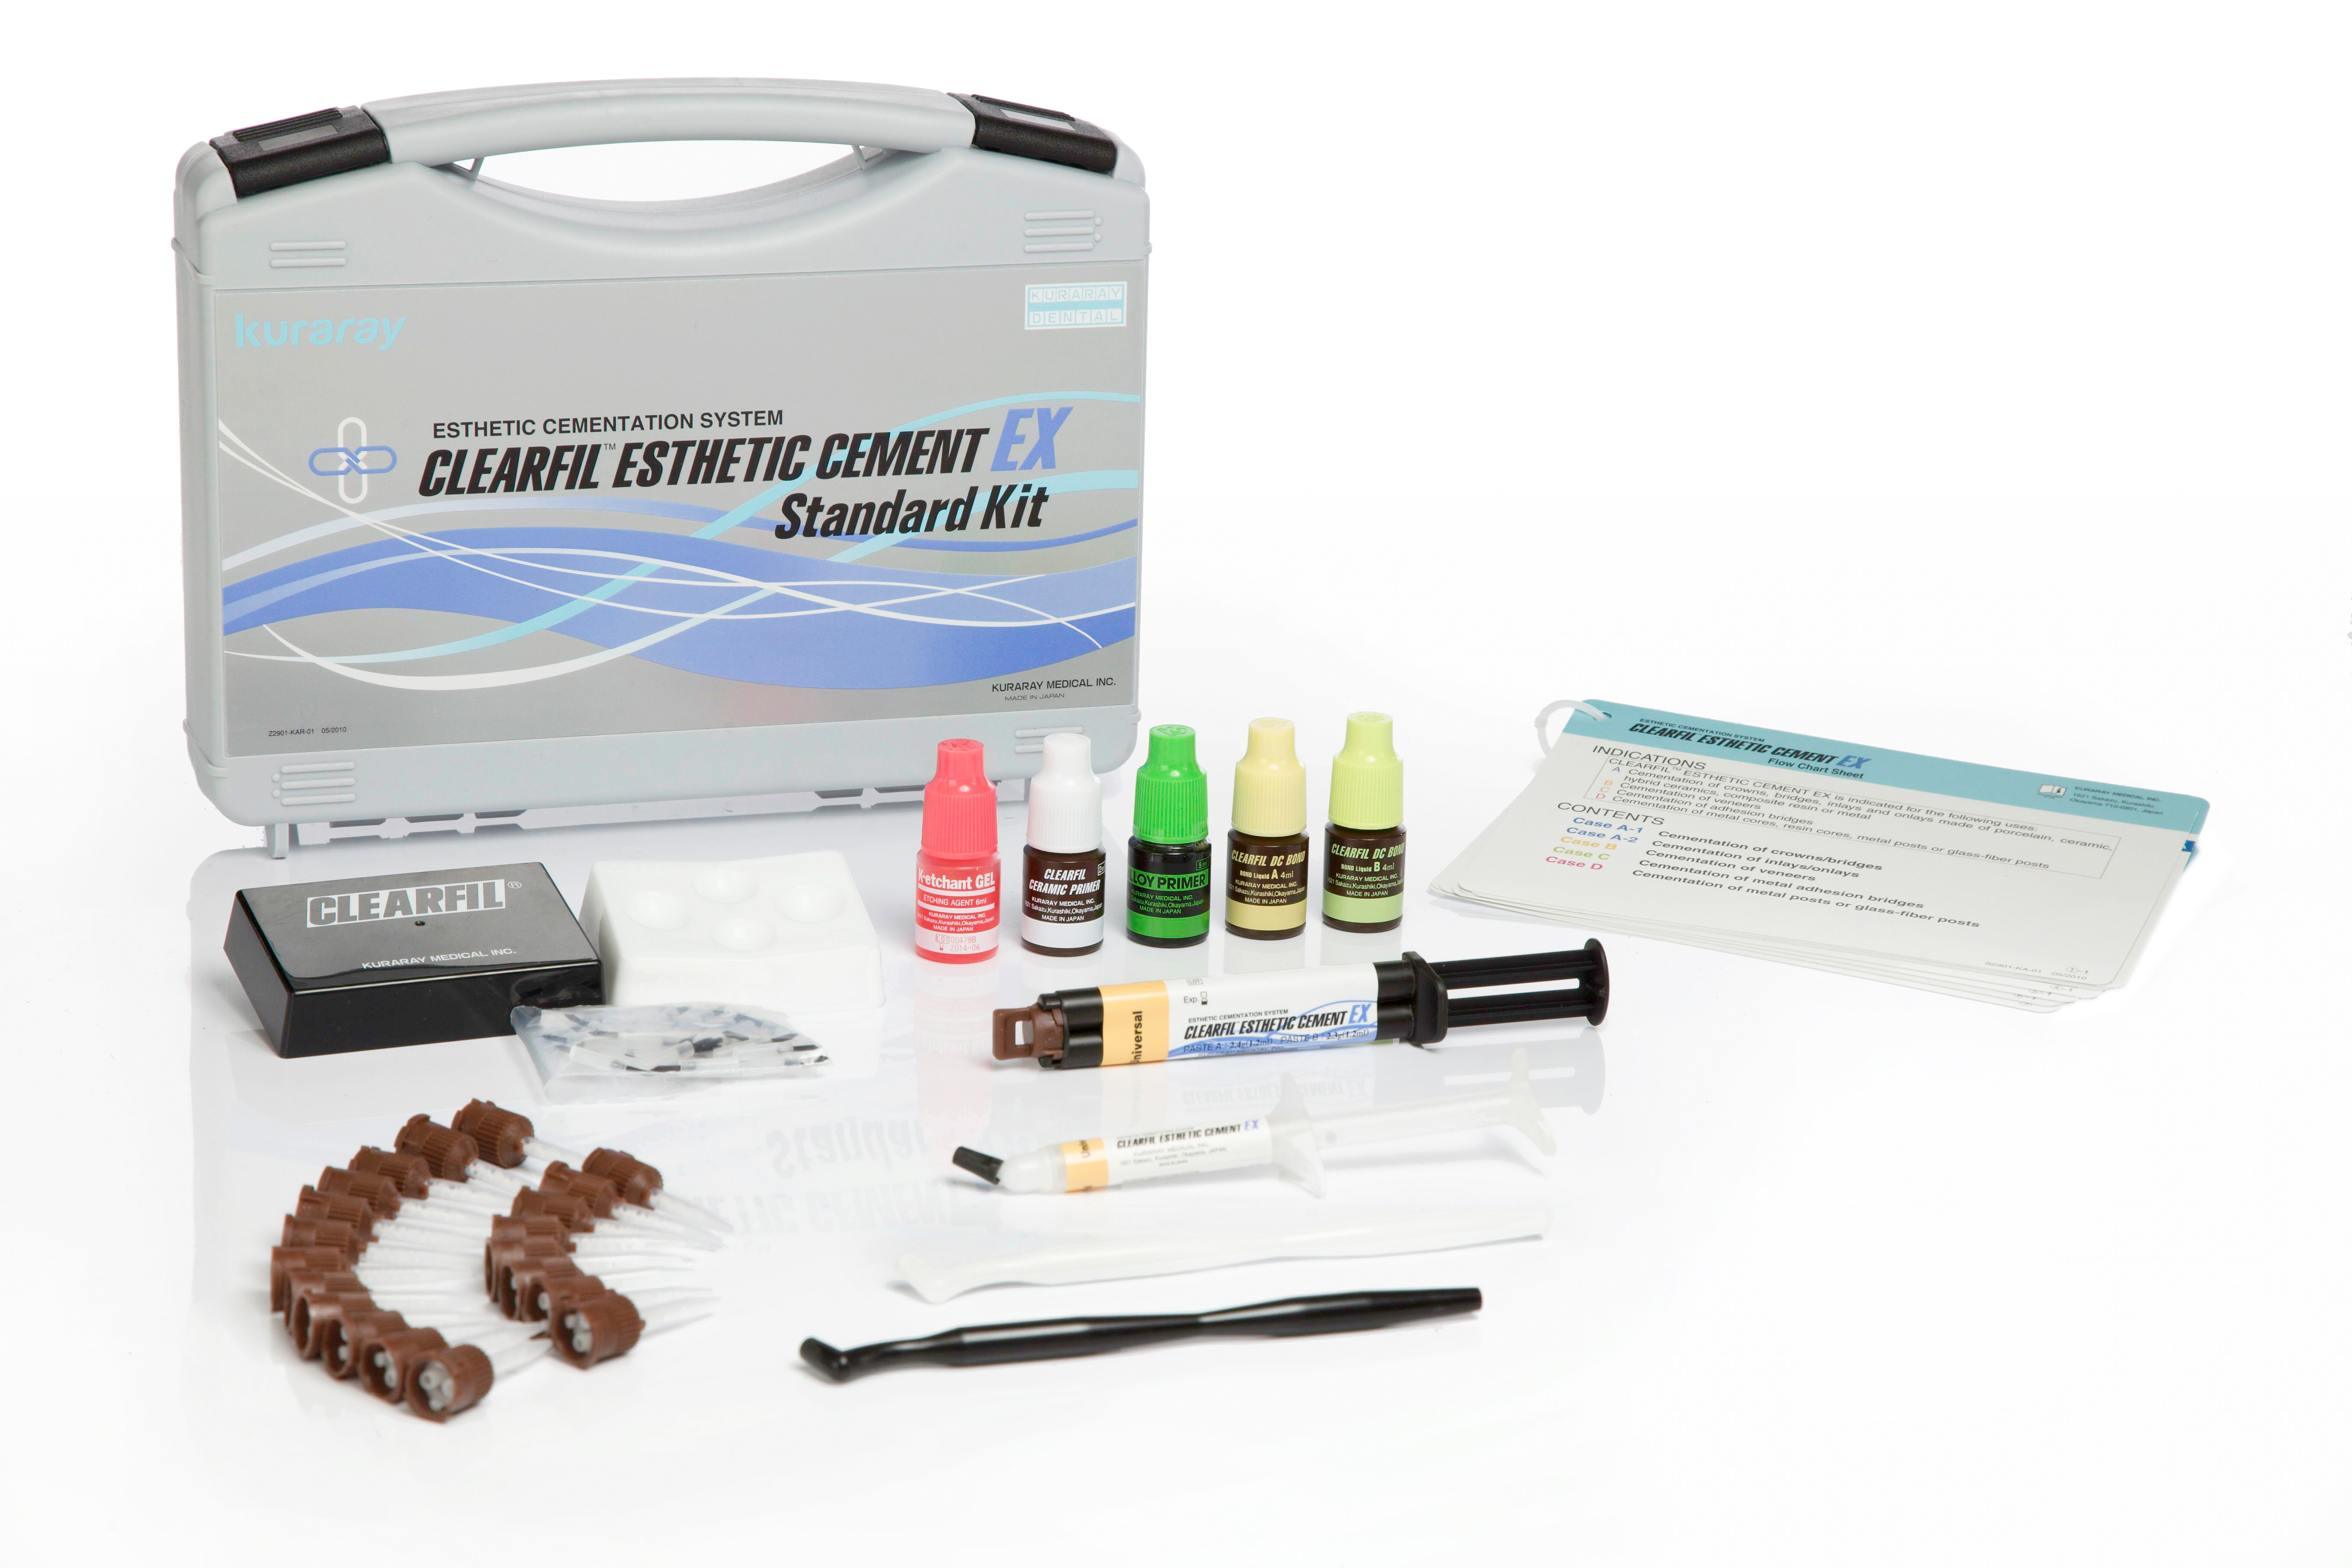 CLEARFIL ESTHETIC CEMENT EX